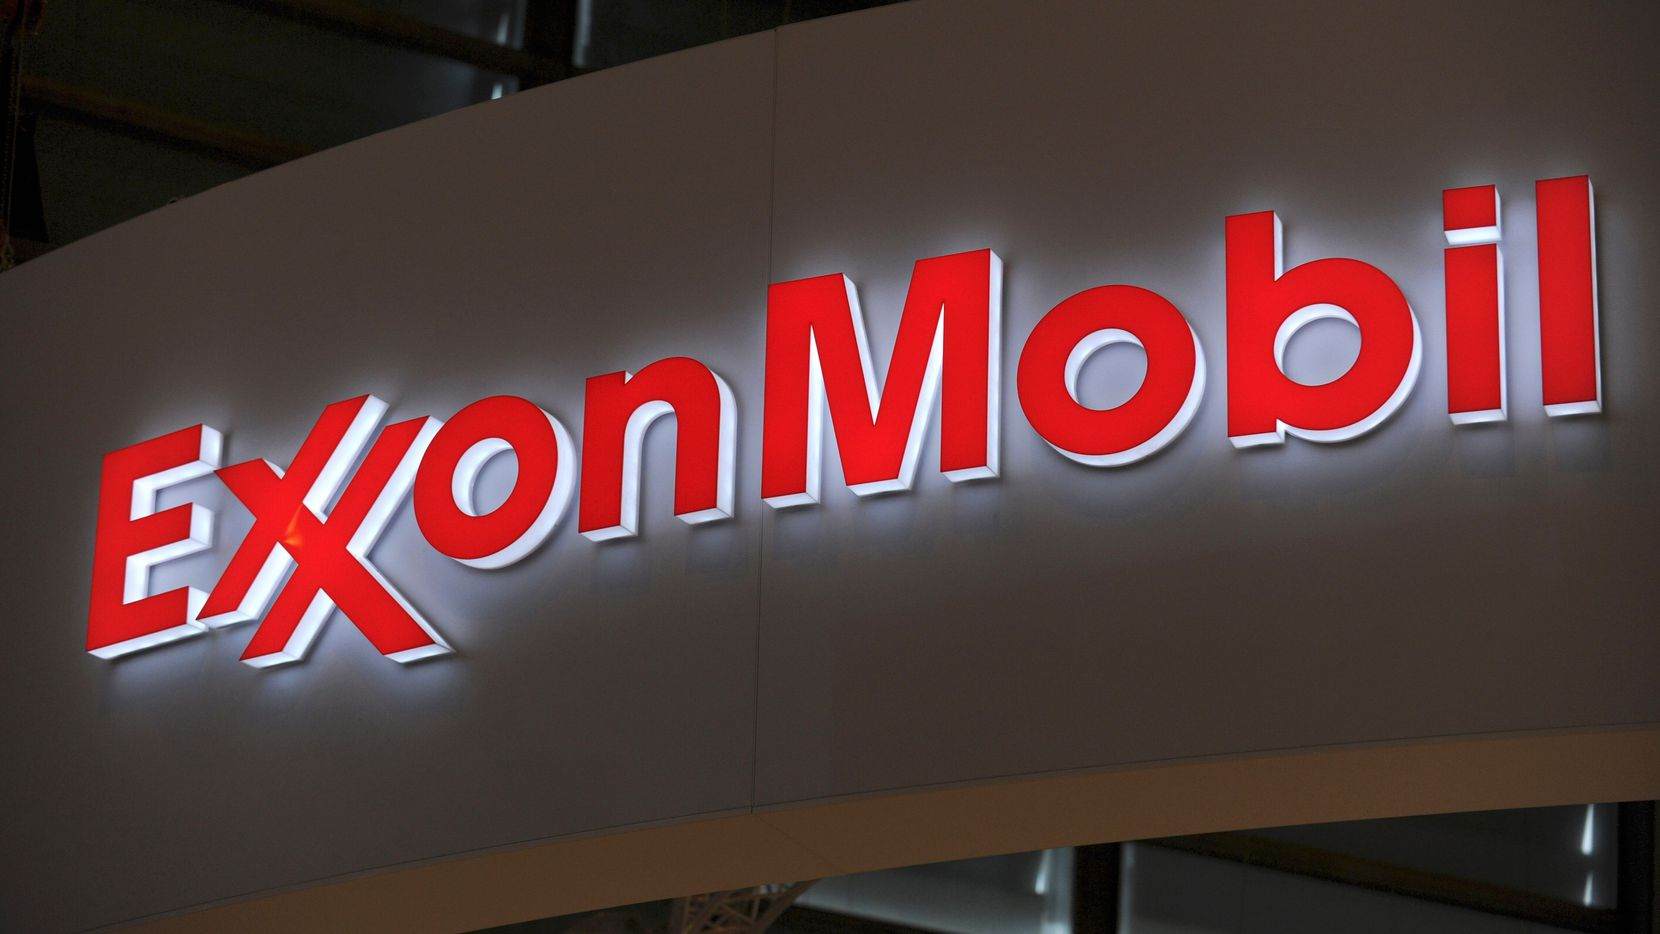 Exxon Mobil's stock price had been on a nine-day rally as oil prices rose.